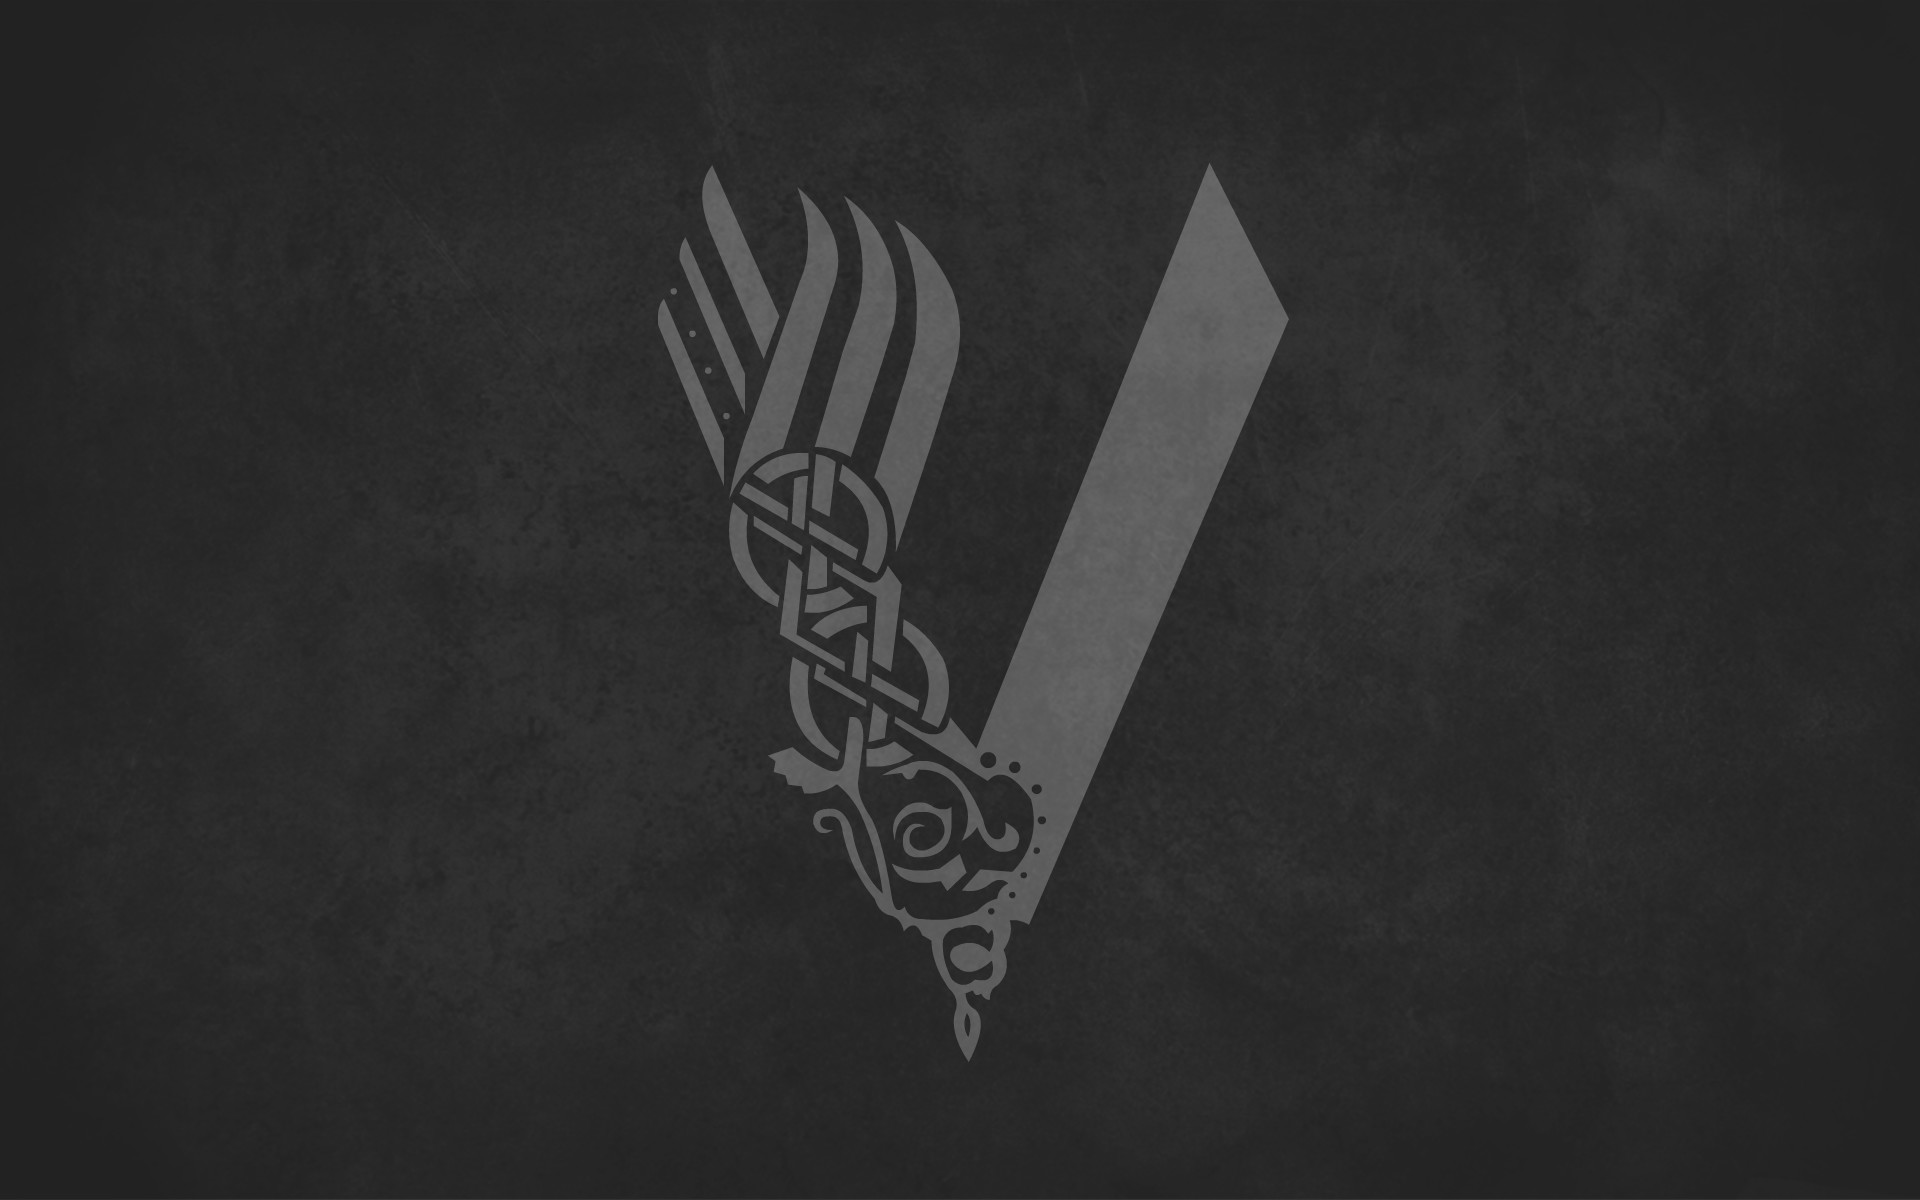 viking, Vikings, Vikings (TV series), TV, logo, minimalism ...